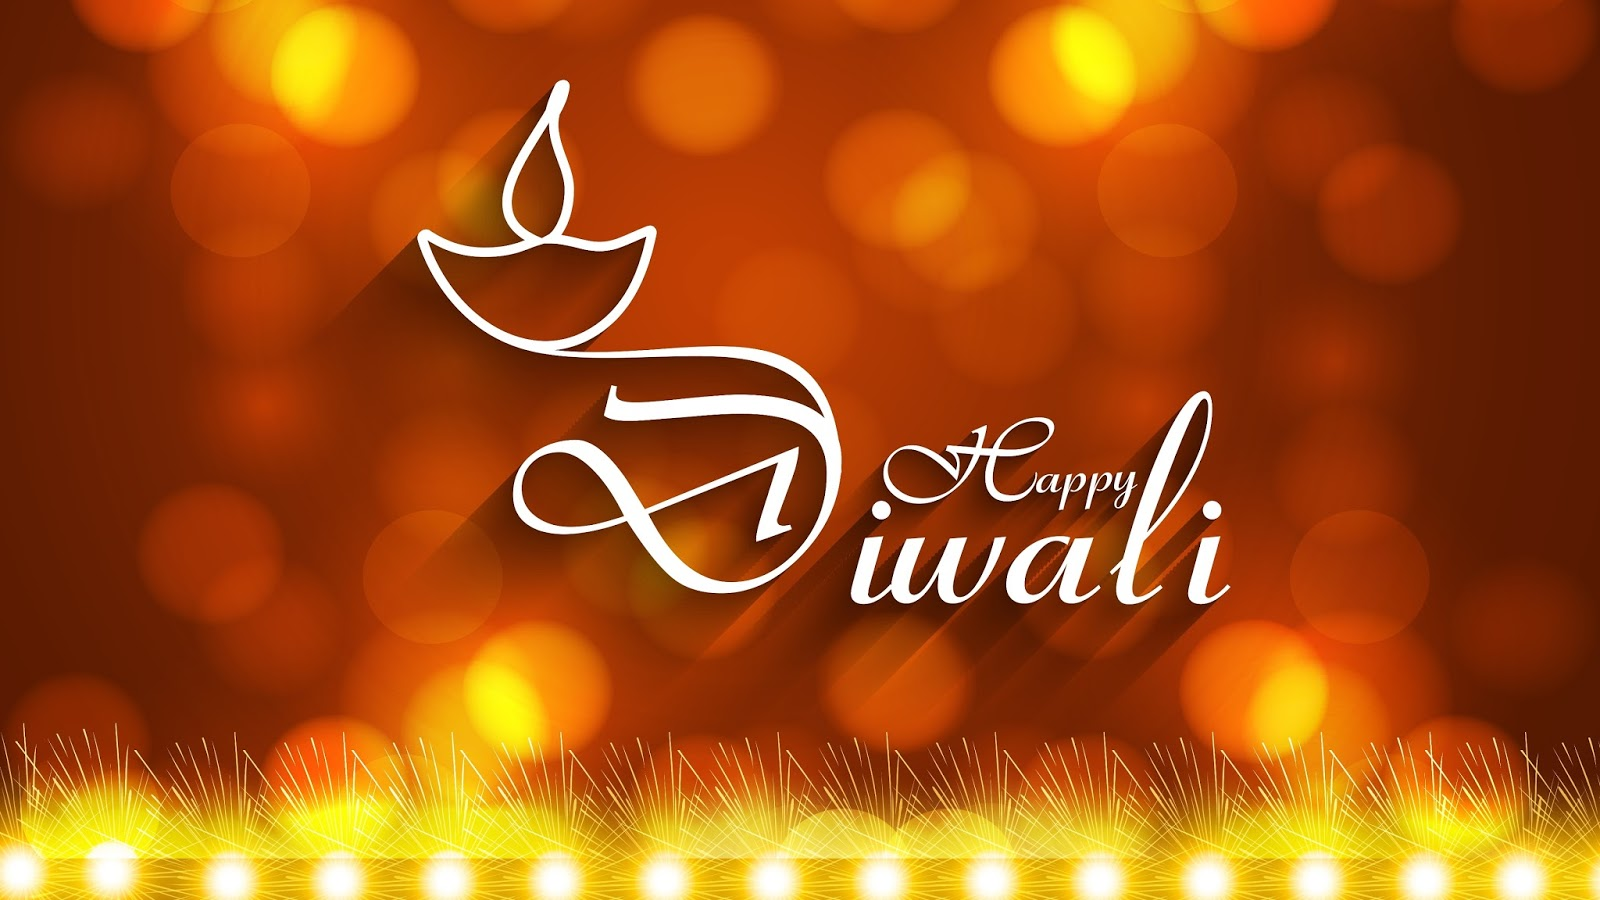 Happy Diwali Wallpaper Free Download Images (2017) | Happy ...